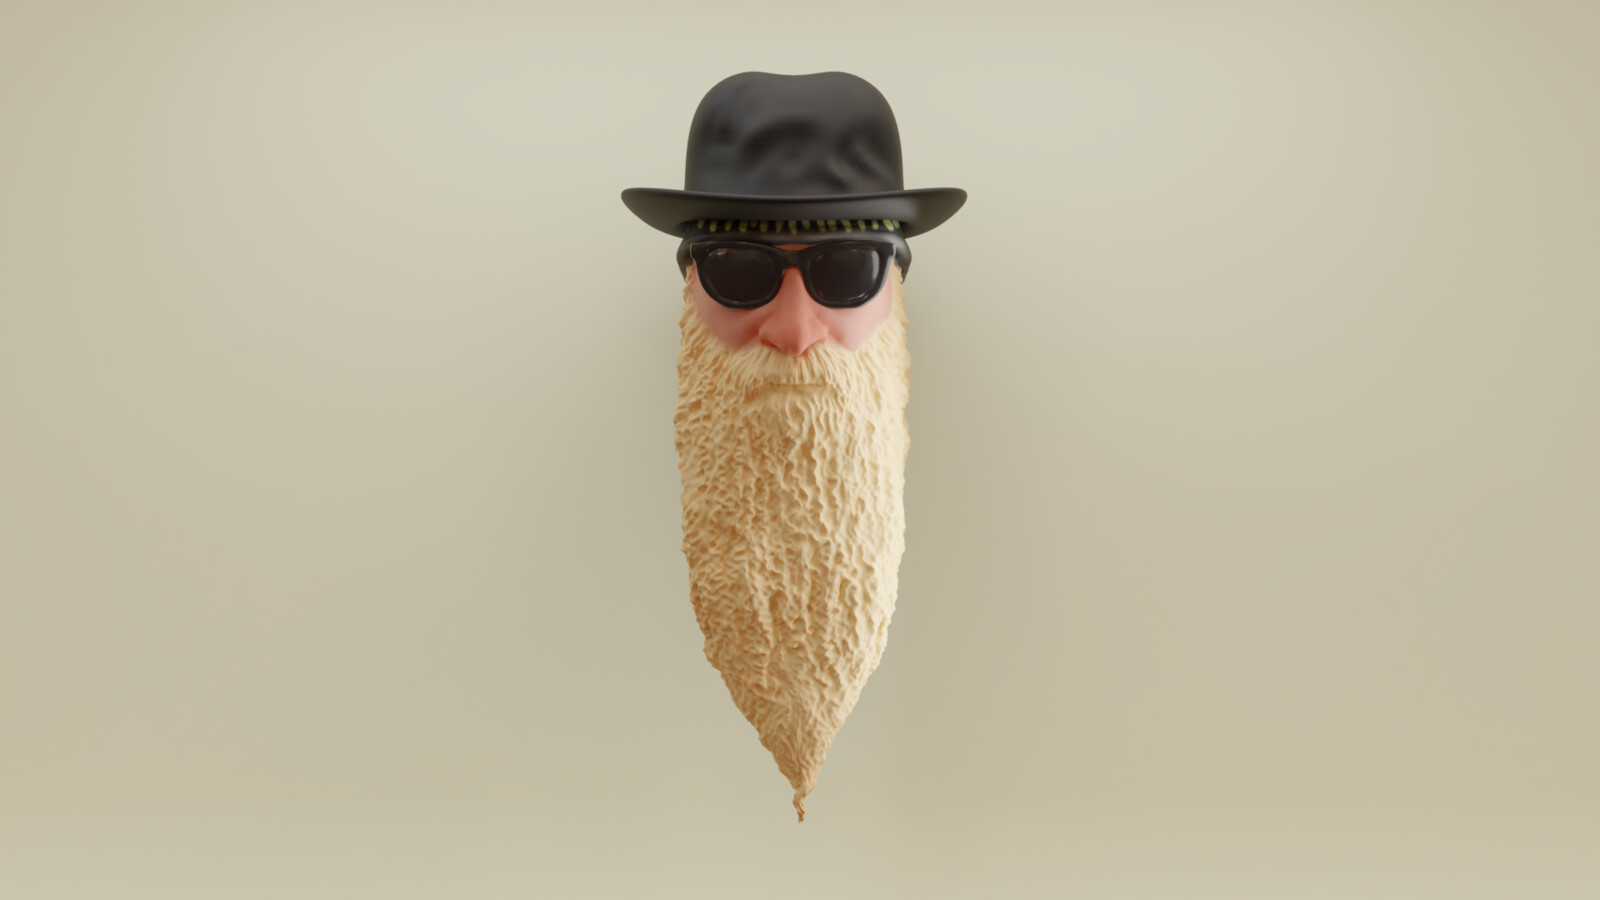 Day10.Bread ZZ Top Total time:1 Hour 40 minutes